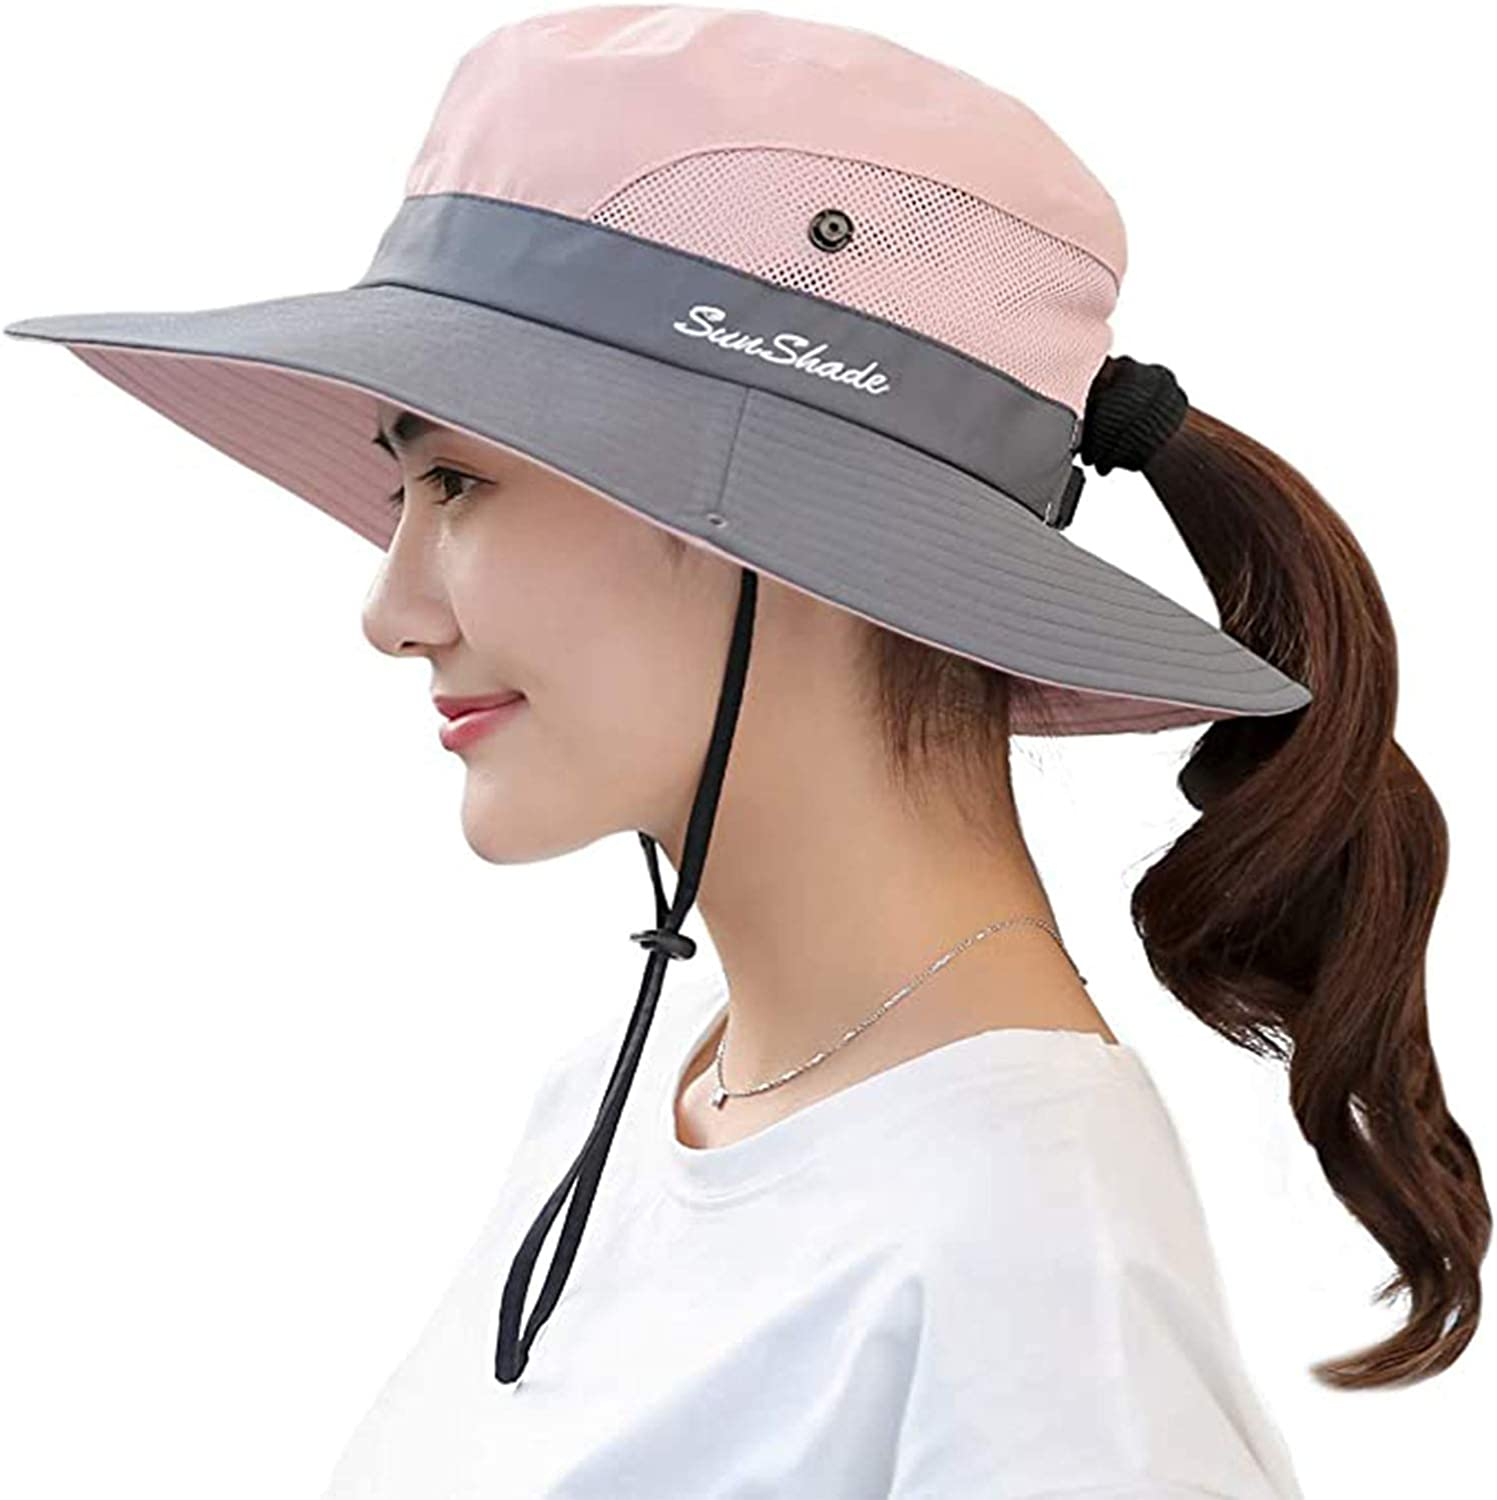 Women's Outdoor UV Protection Summer mesh Wide hat Sun hat with Ponytail Fisherman hat, Suitable for Girls Summer